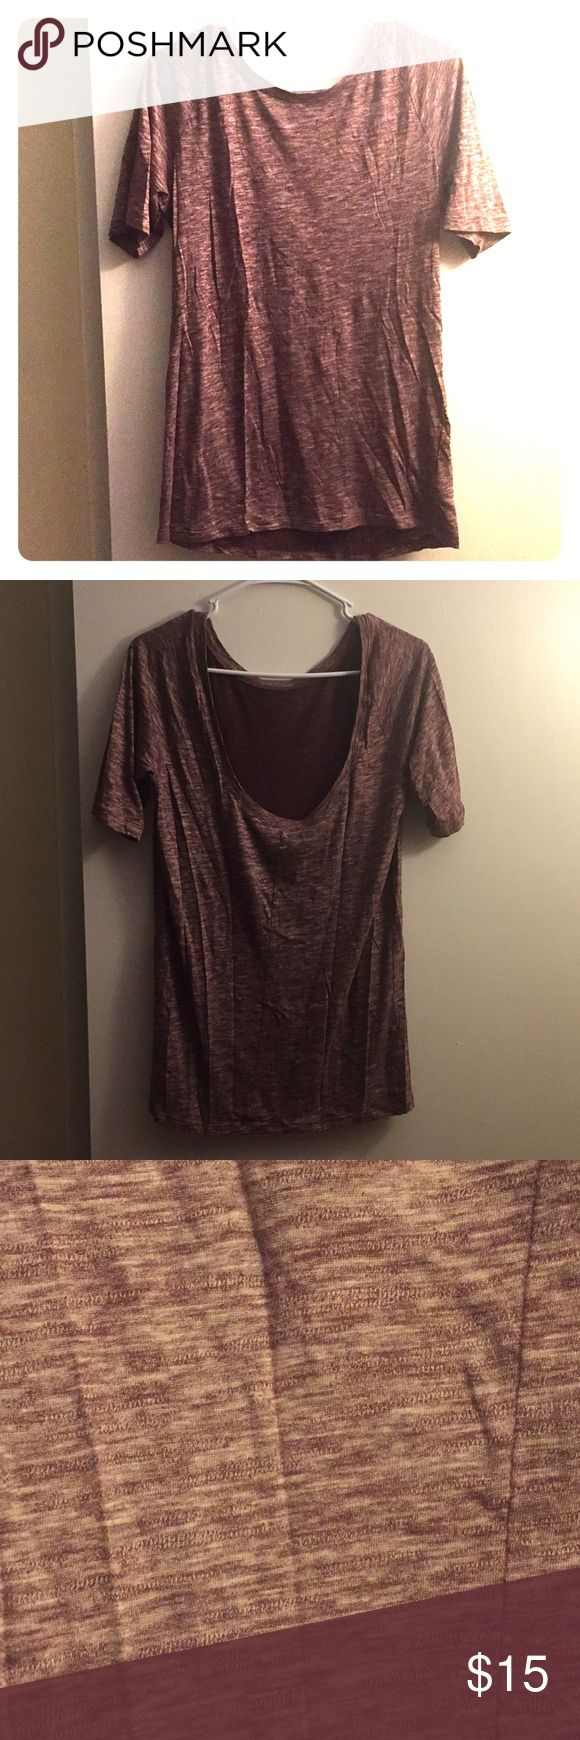 Gap sexy back tee This shirt needs way more love than I give it with a sexy ballet scoop in the back and a wonderful wine color. Soft and lightweight, looks great with a pair of shorts or destructed jeans. Size large but is a little more fitted style shirt, would easily fit as a medium. Worn only a few times. GAP Tops Tees - Short Sleeve